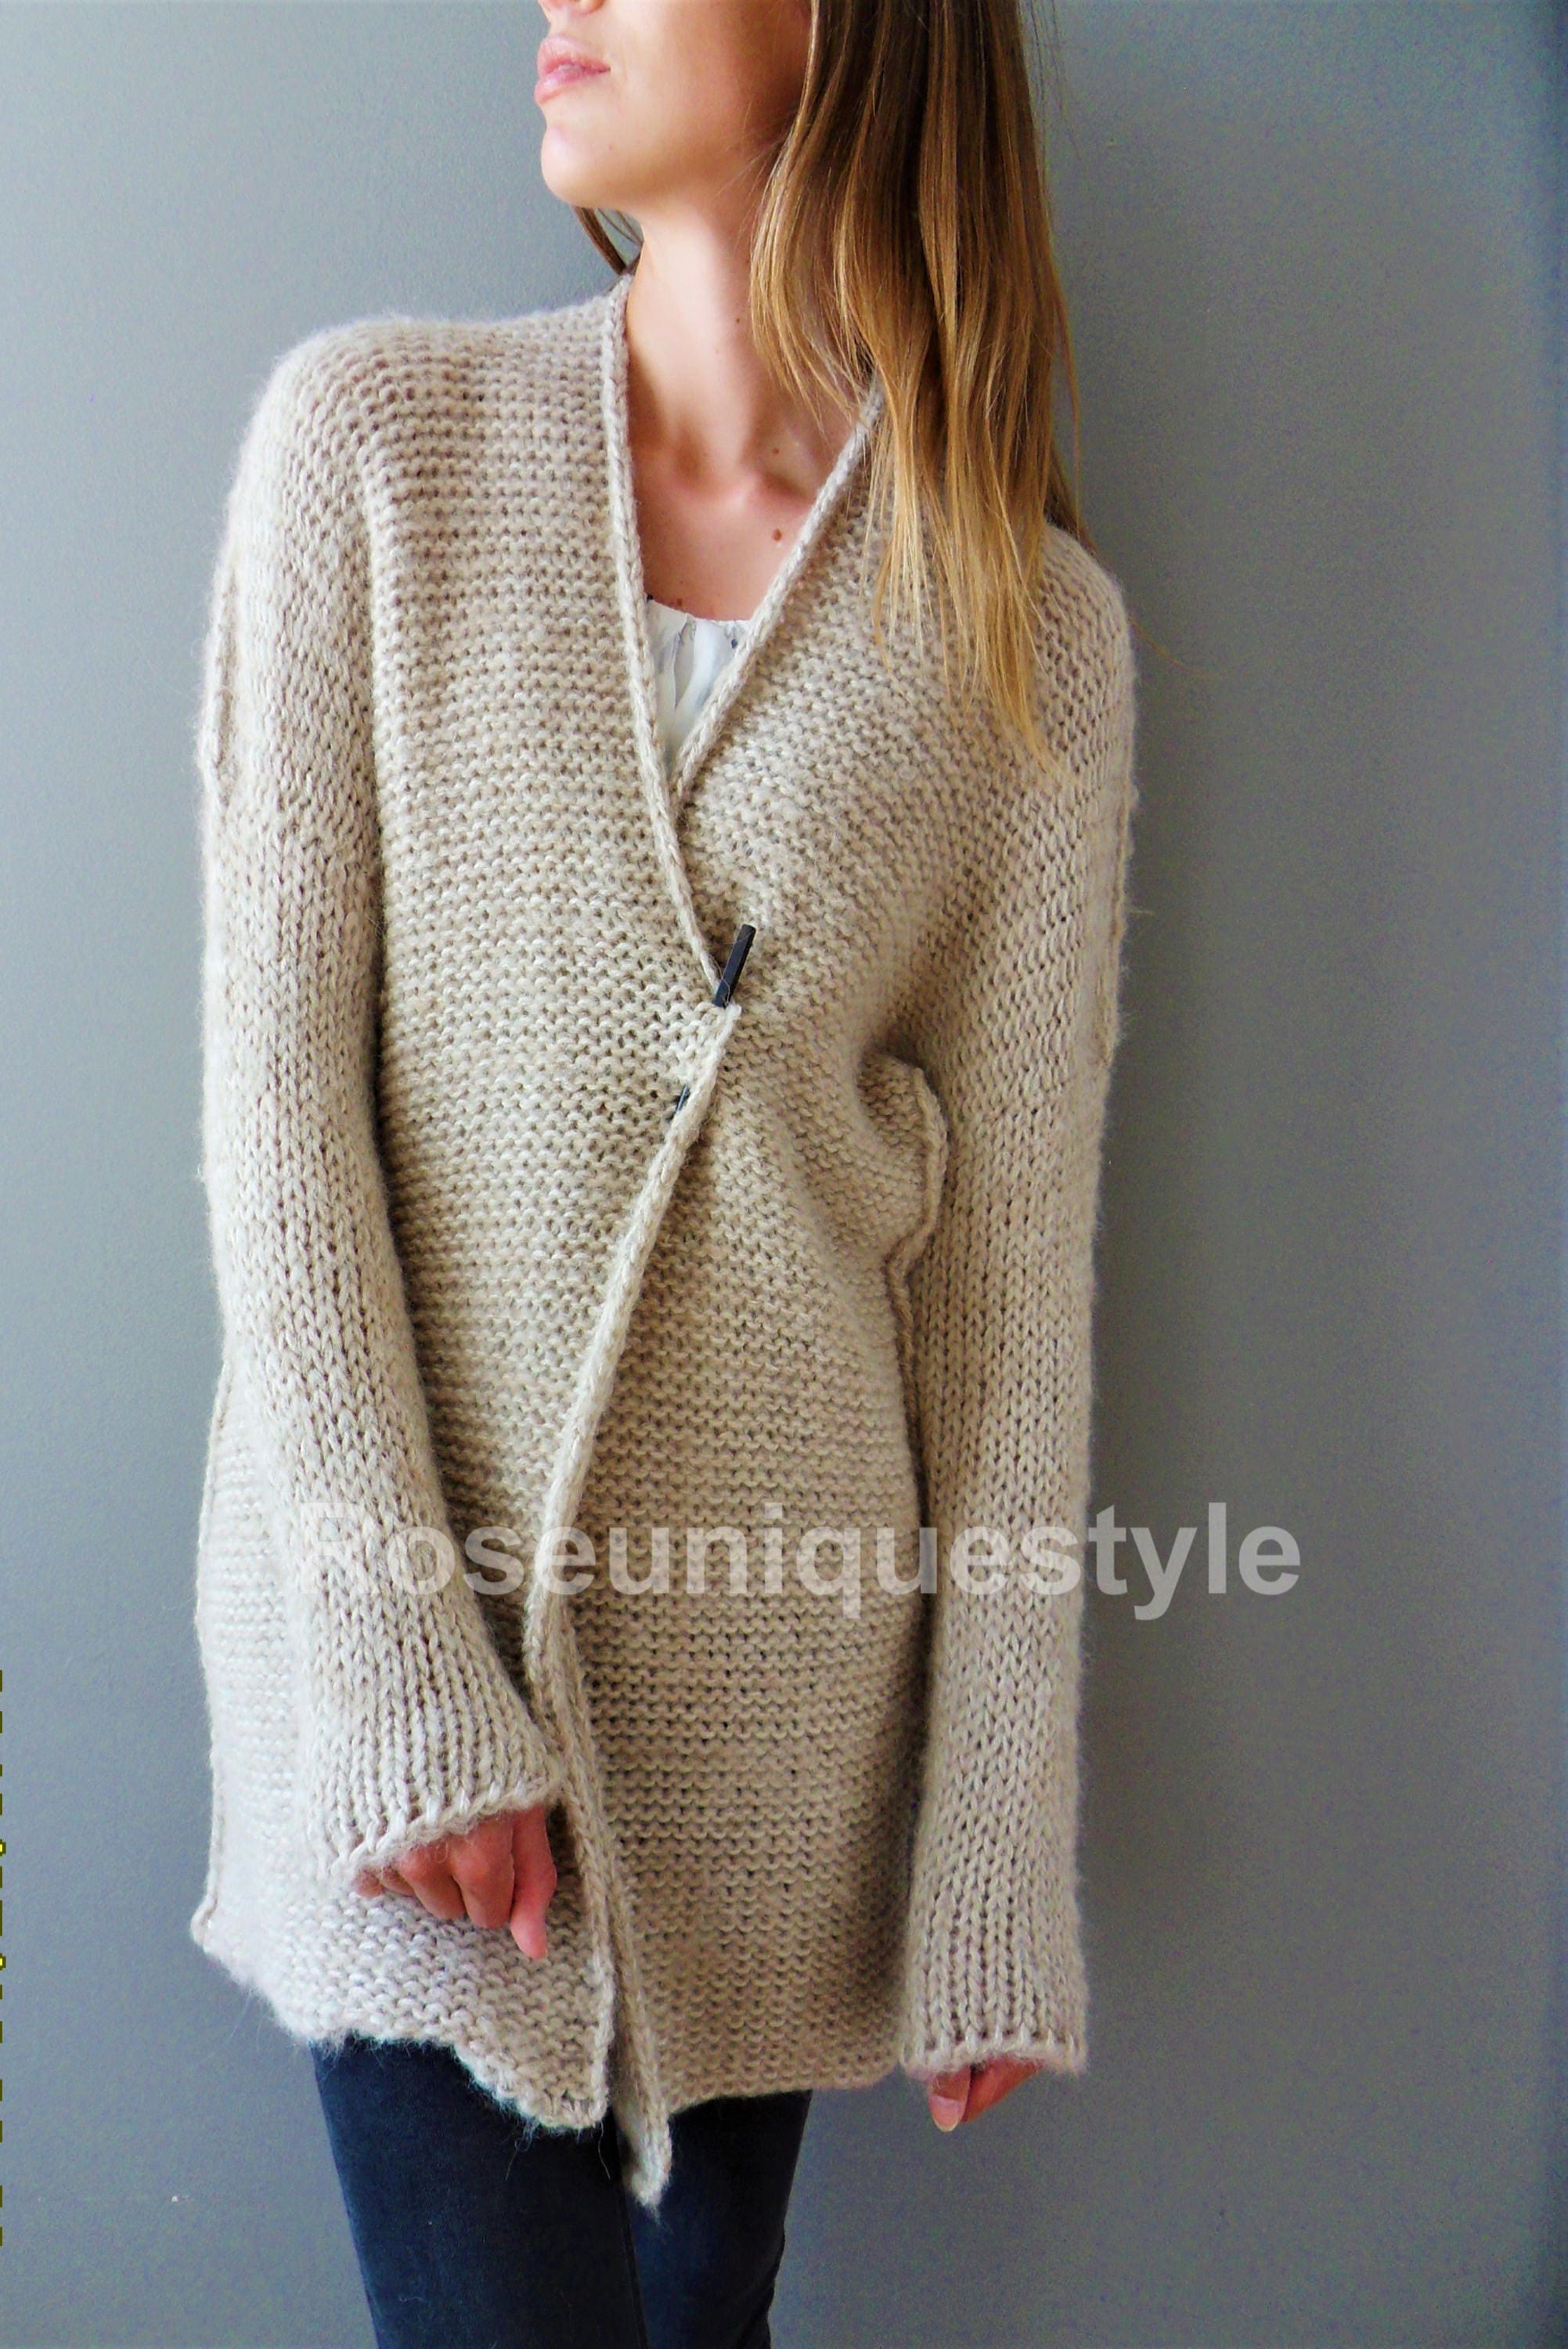 Find great deals on eBay for chunky black cardigan. Shop with confidence. Skip to main content. eBay: Shop by category. Shop by category. Cato Womens Plus Size 18/20 Black Cream Chunky Knit Cardigan Sweater Pockets. Cato · Size (Women's)W · Cardigan Sweater. $ or Best Offer.